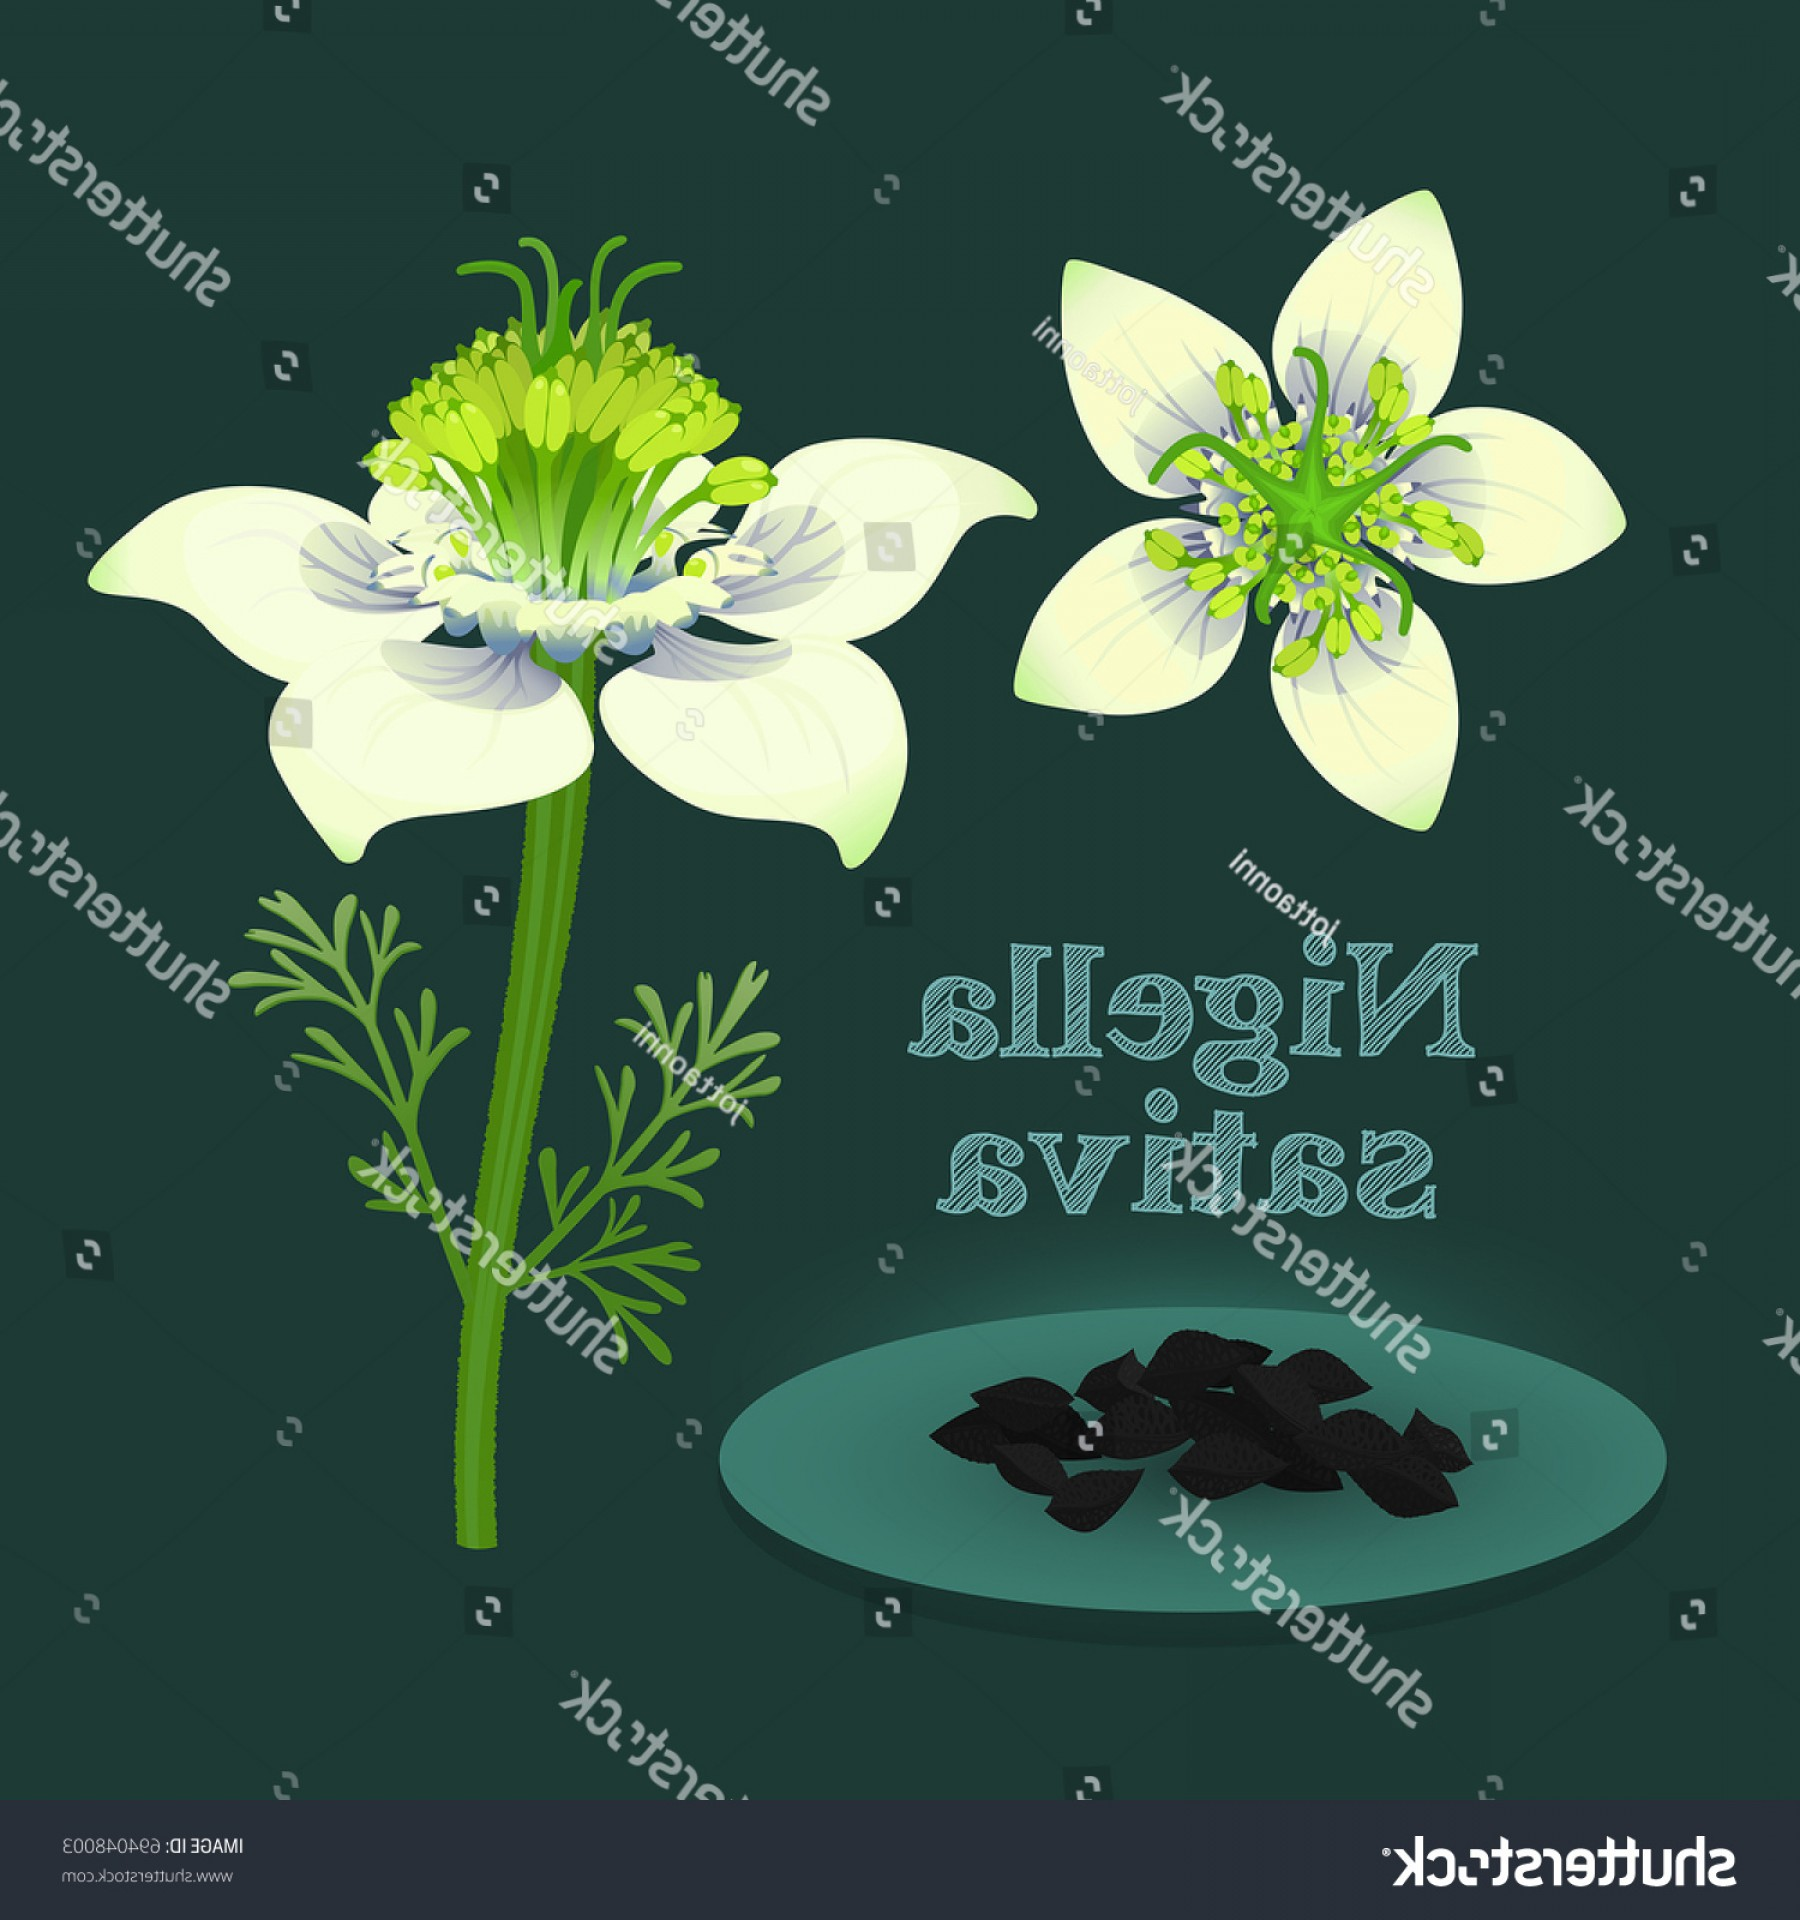 Seed Flower Vectors: Black Cumin Nigella Sativa White Flowers